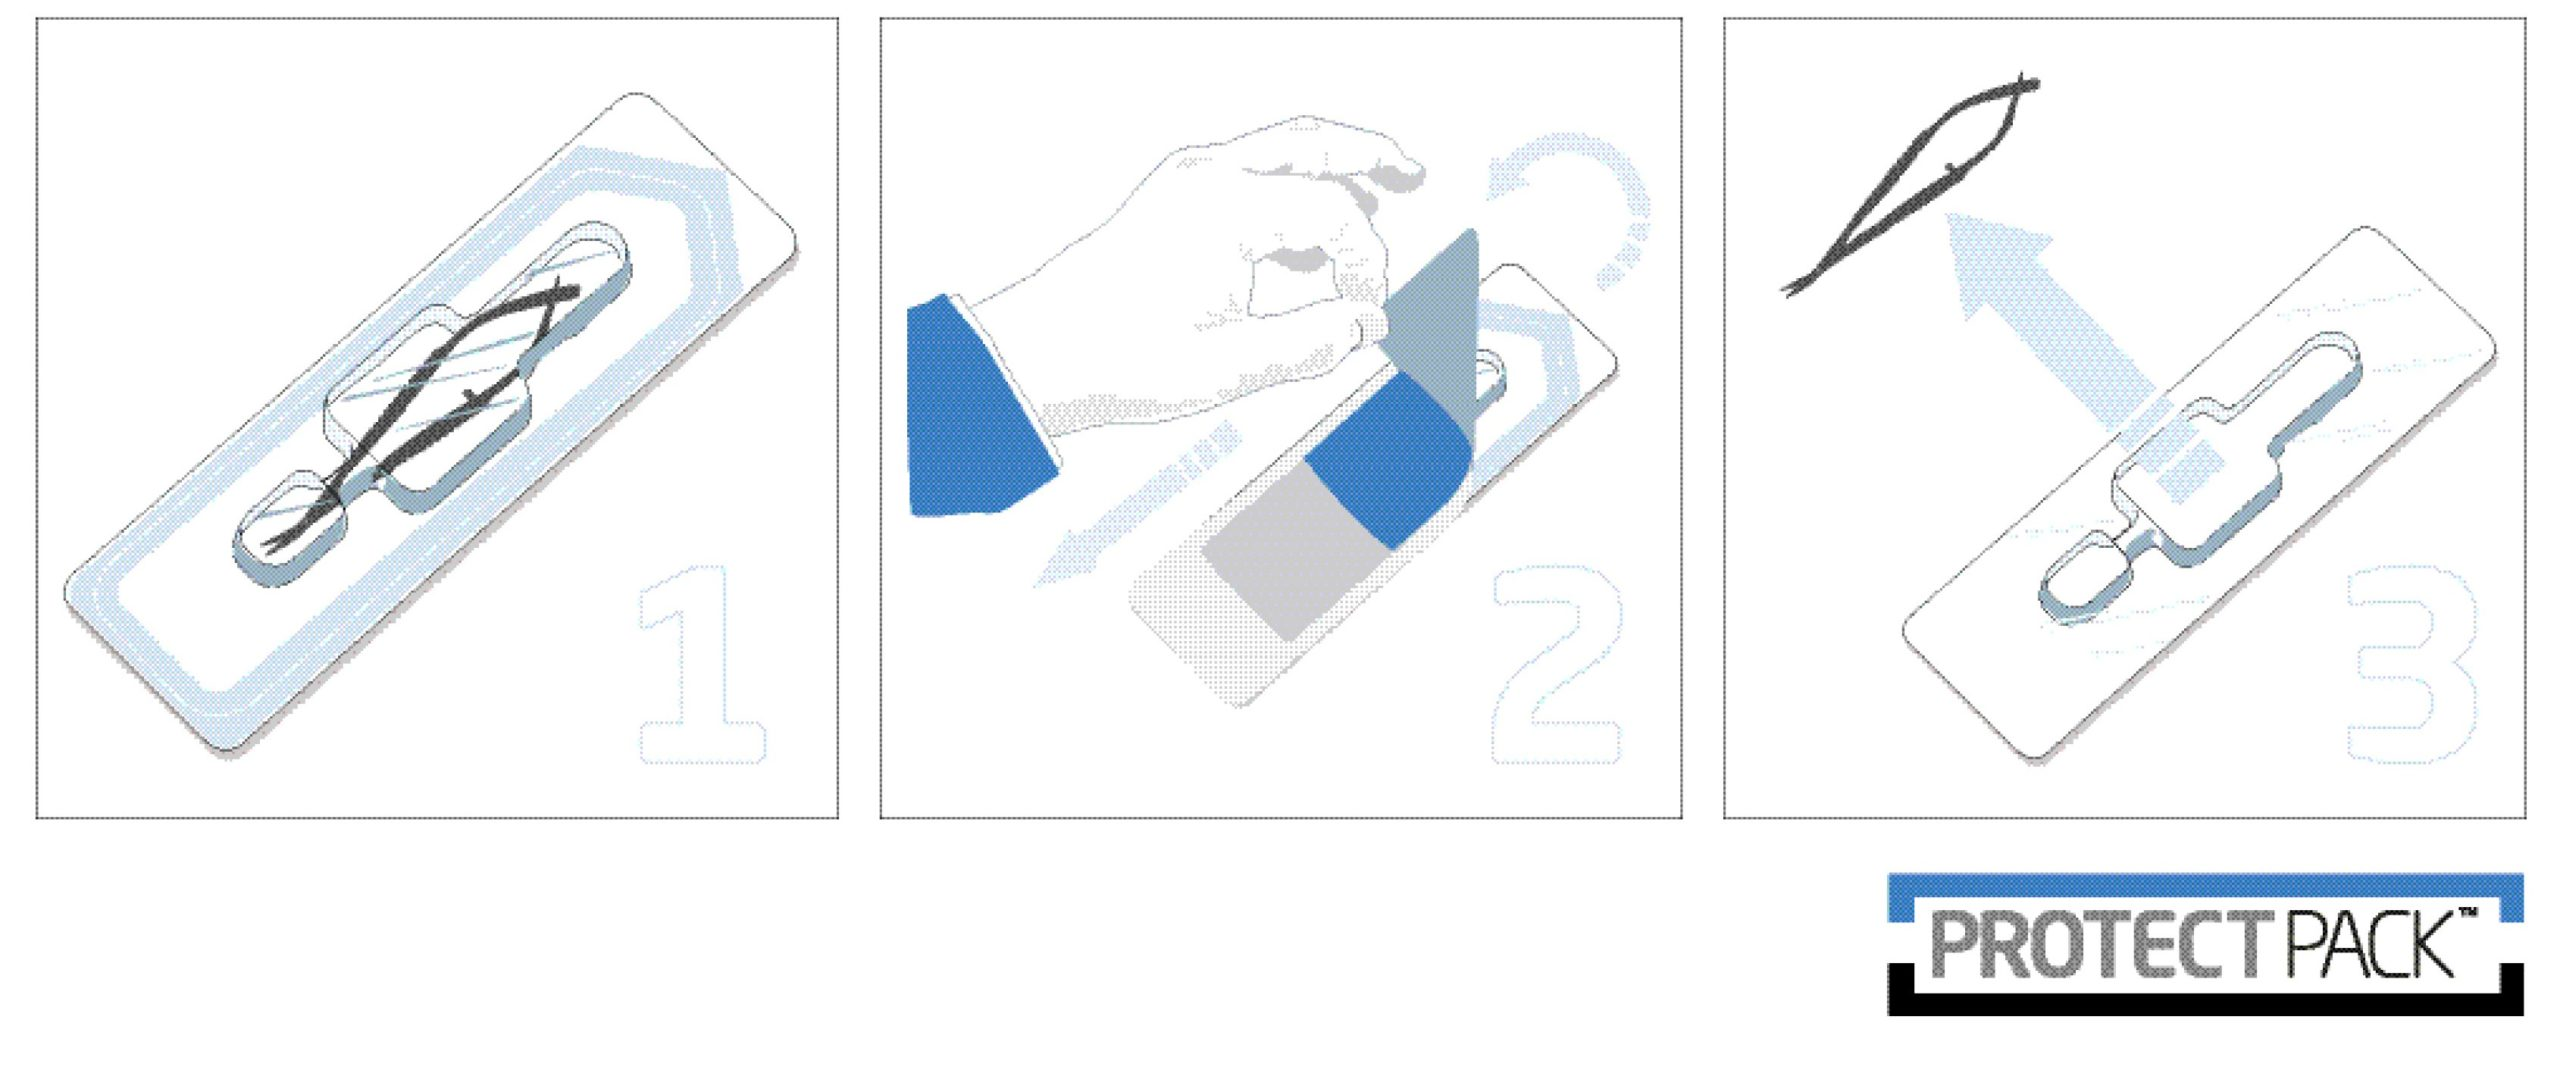 Protect Pack instruction image, an easy-to-open, peel pack ensuring product integrity and safety